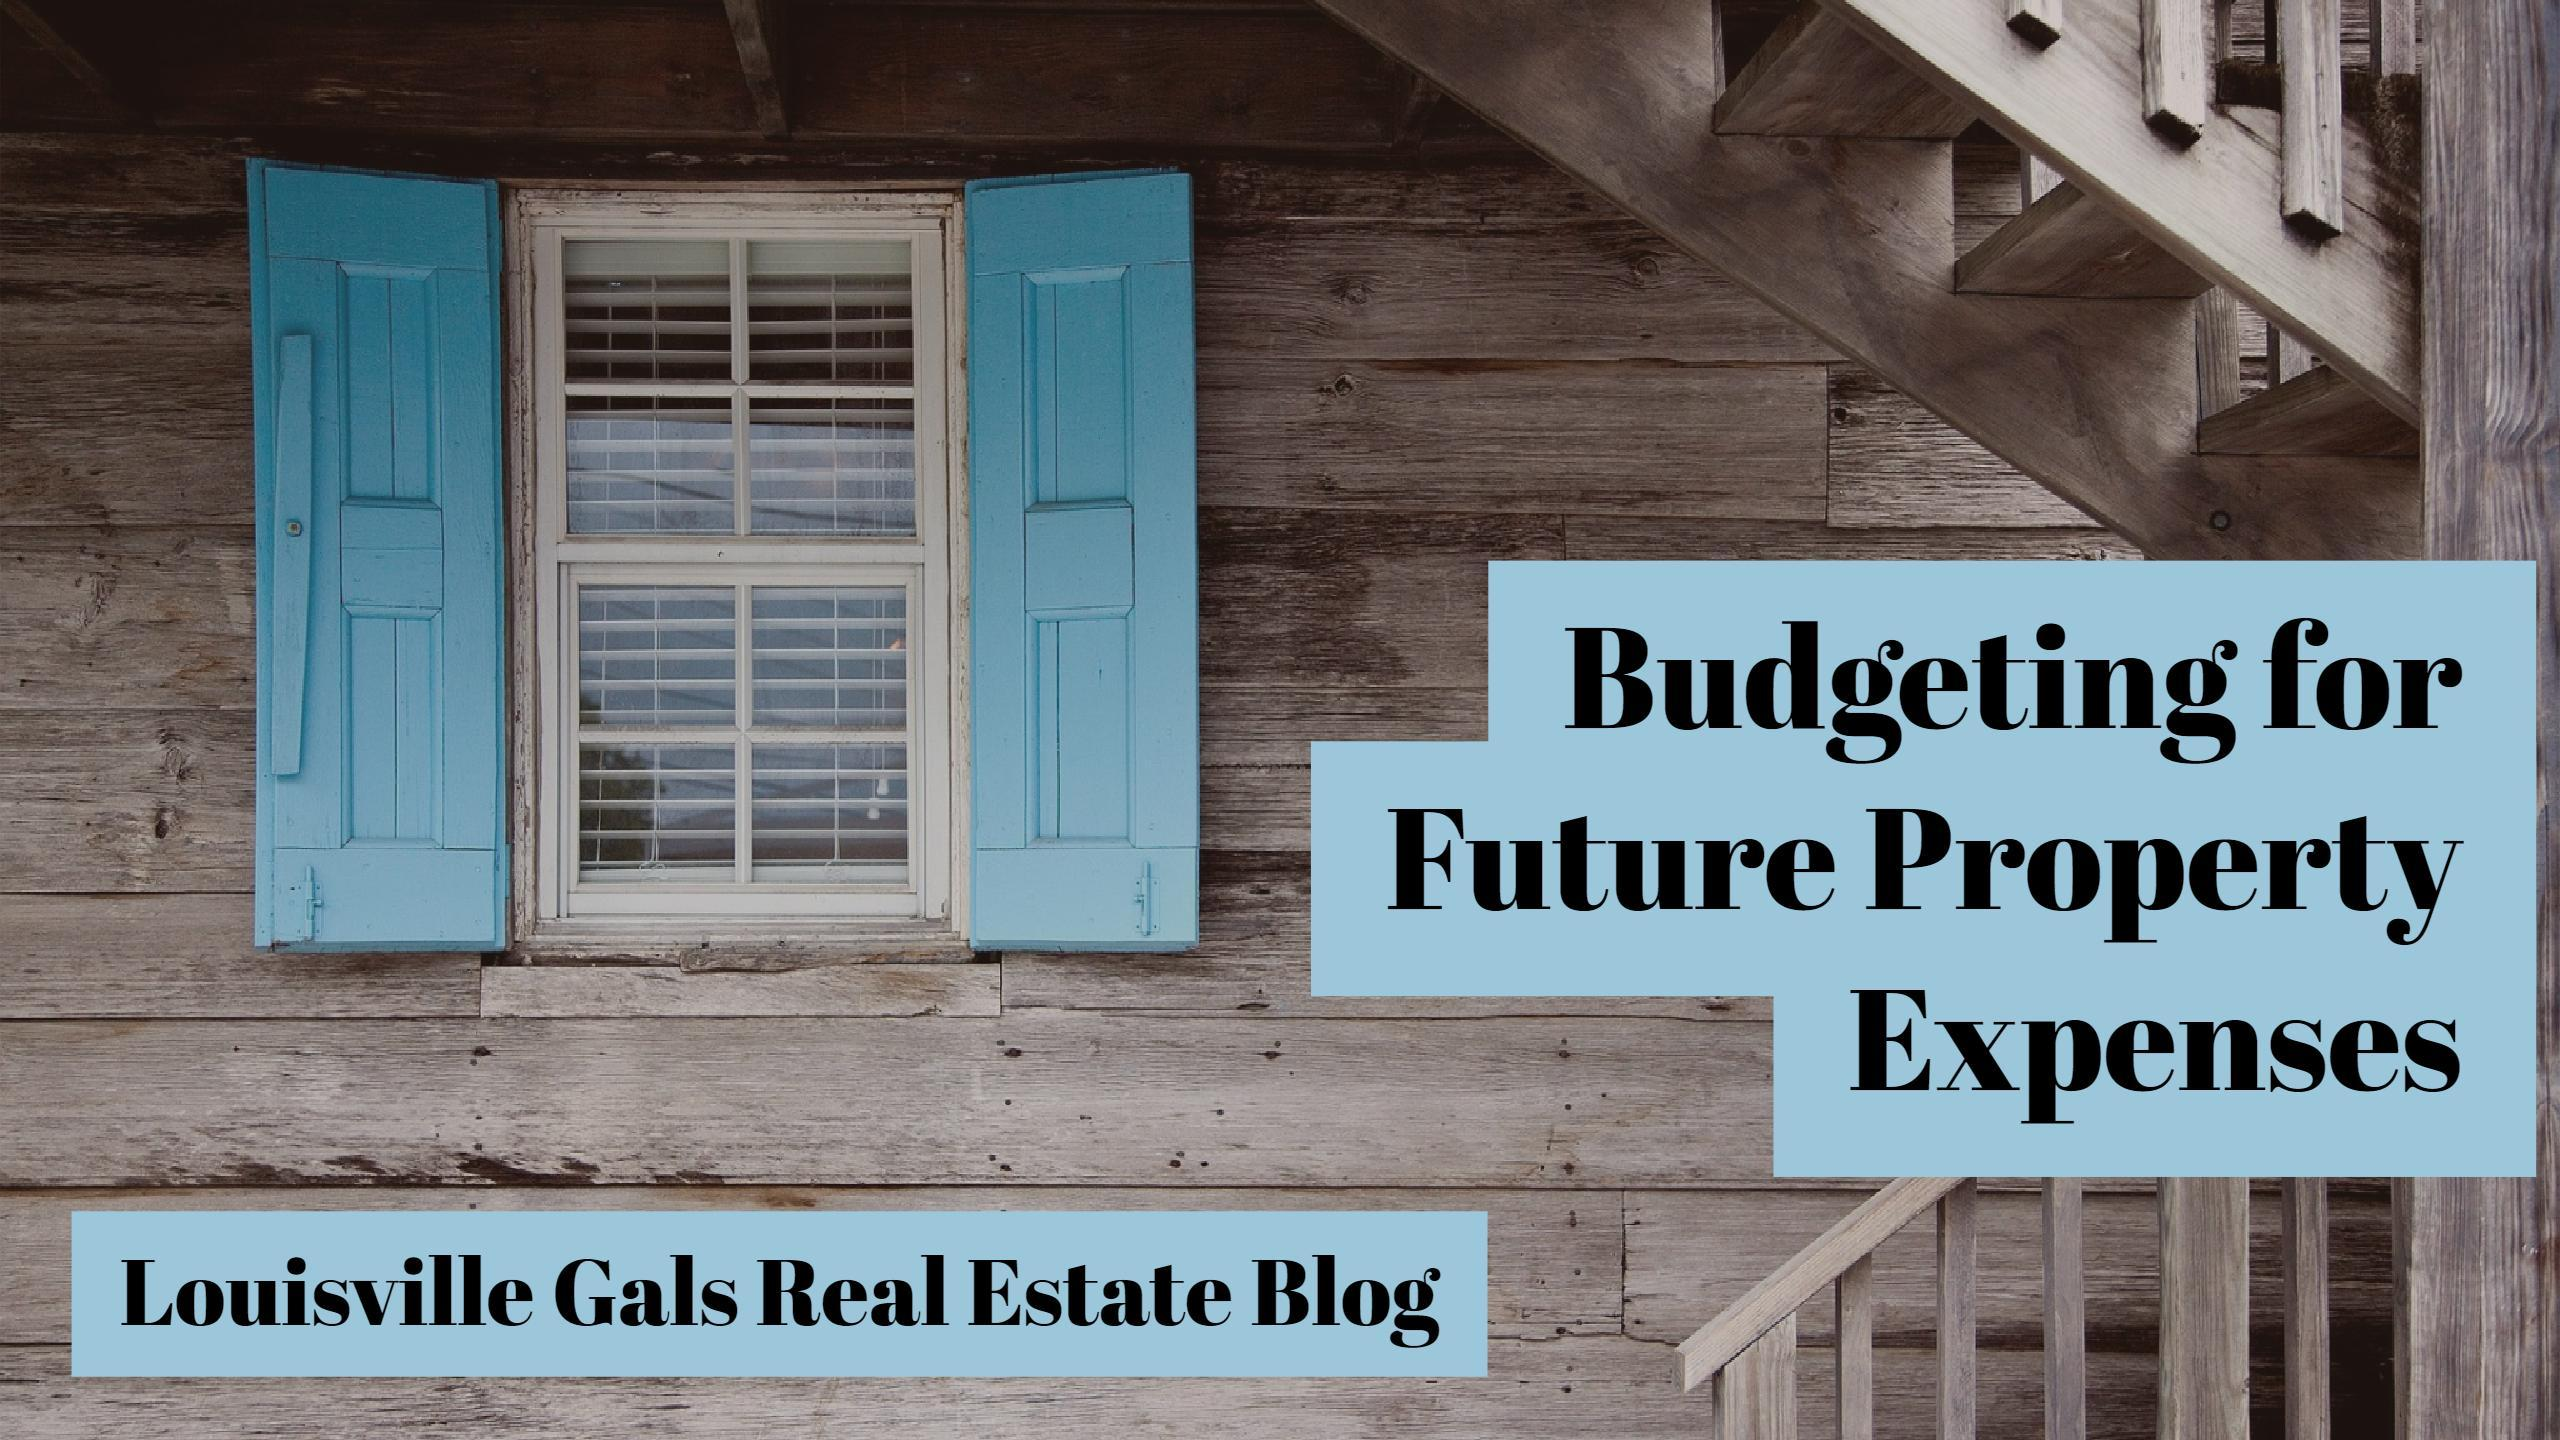 How to Properly Budget for Future Property Expenses